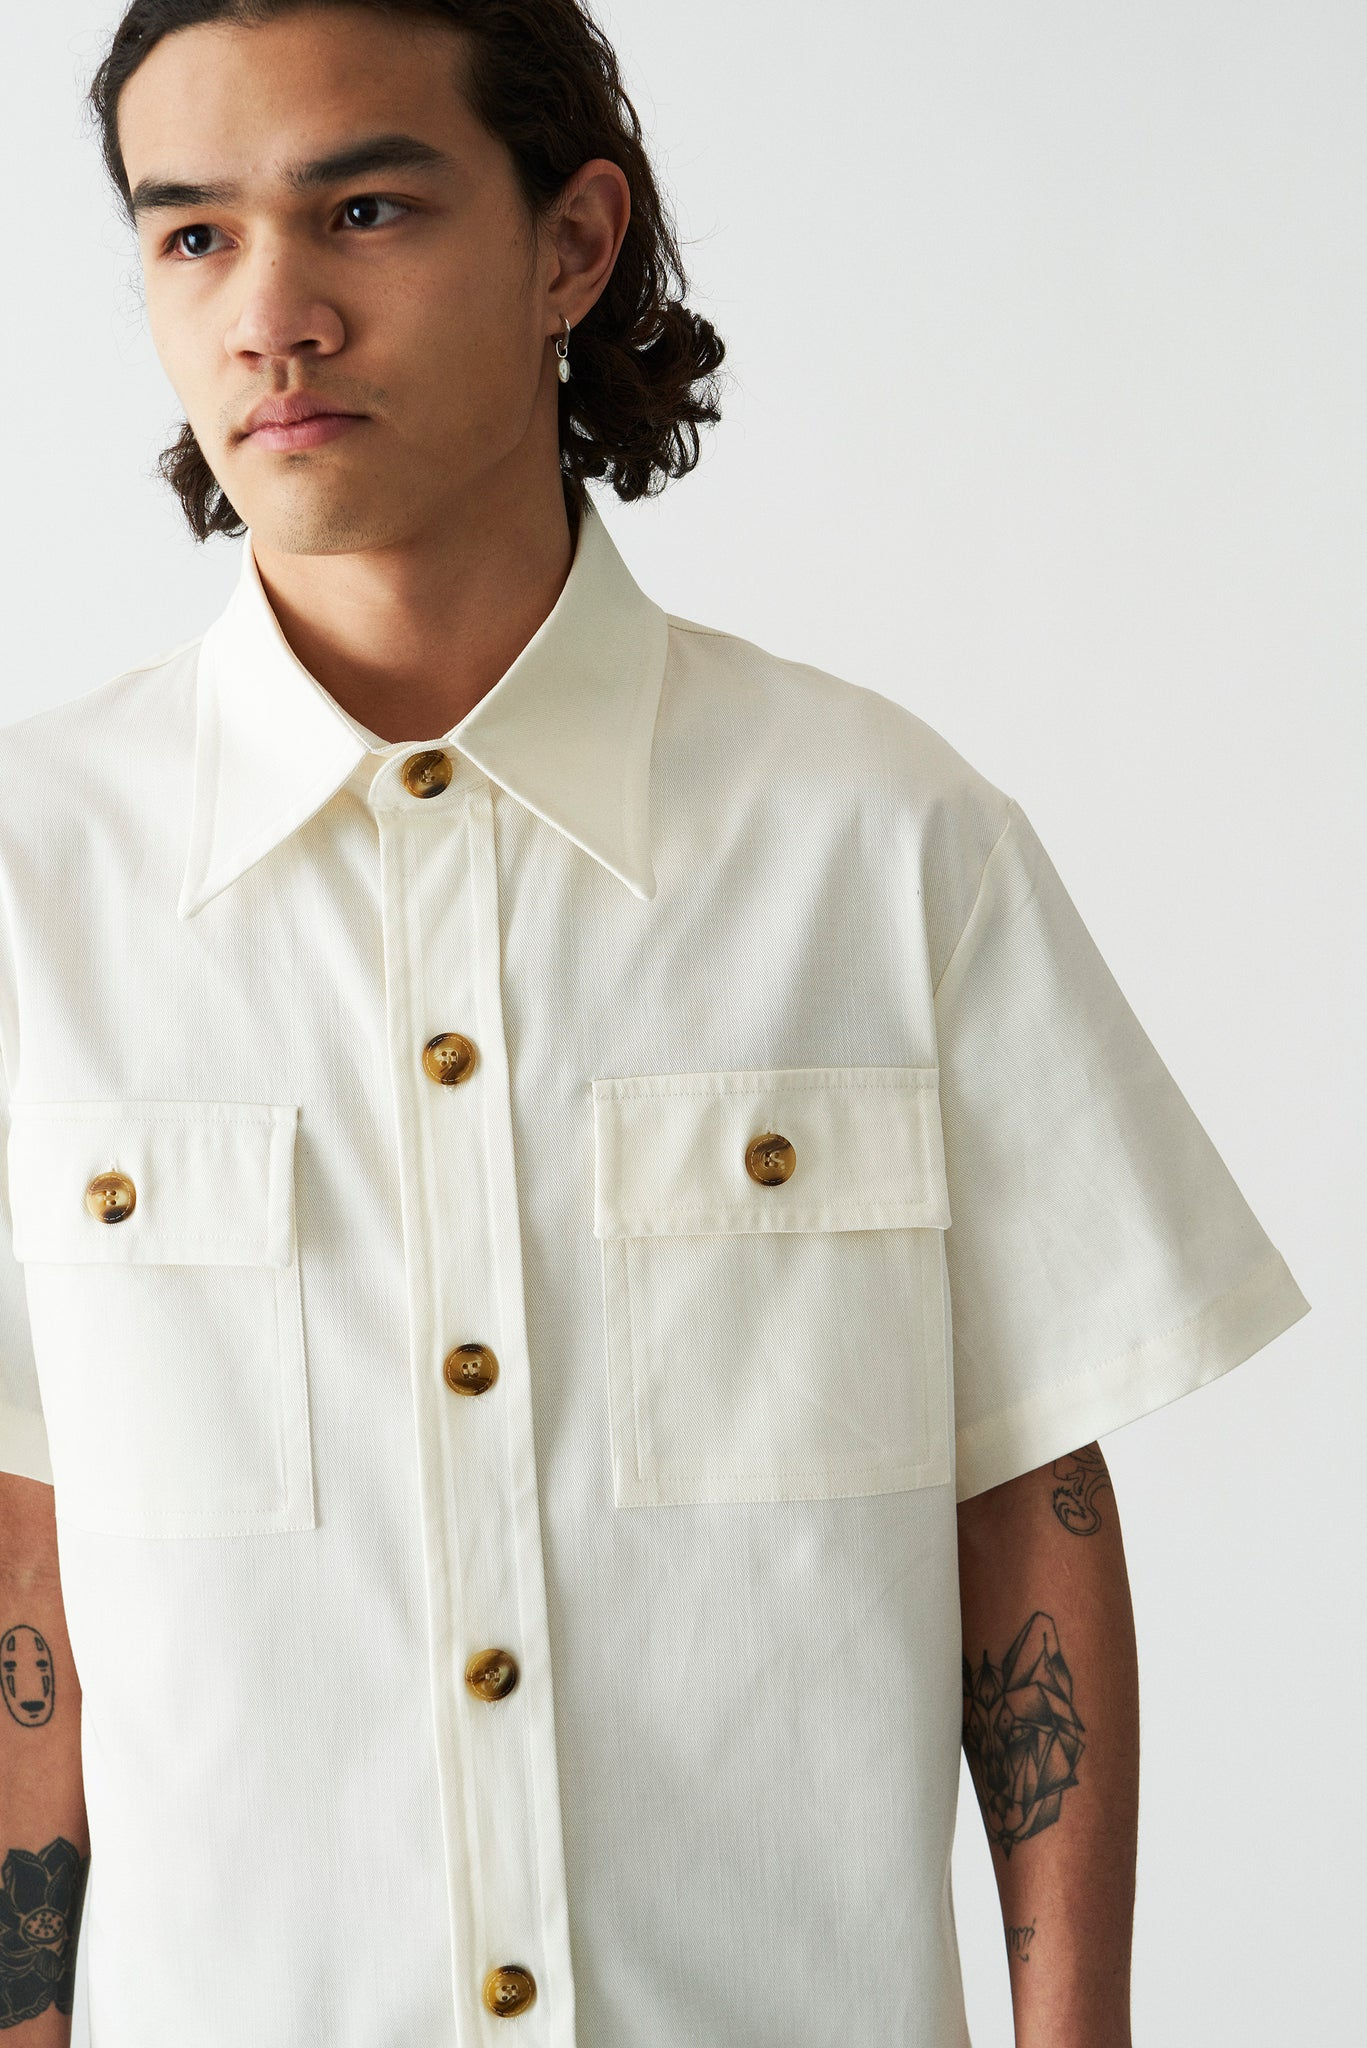 Martin Asbjorn Willy Shirt off white